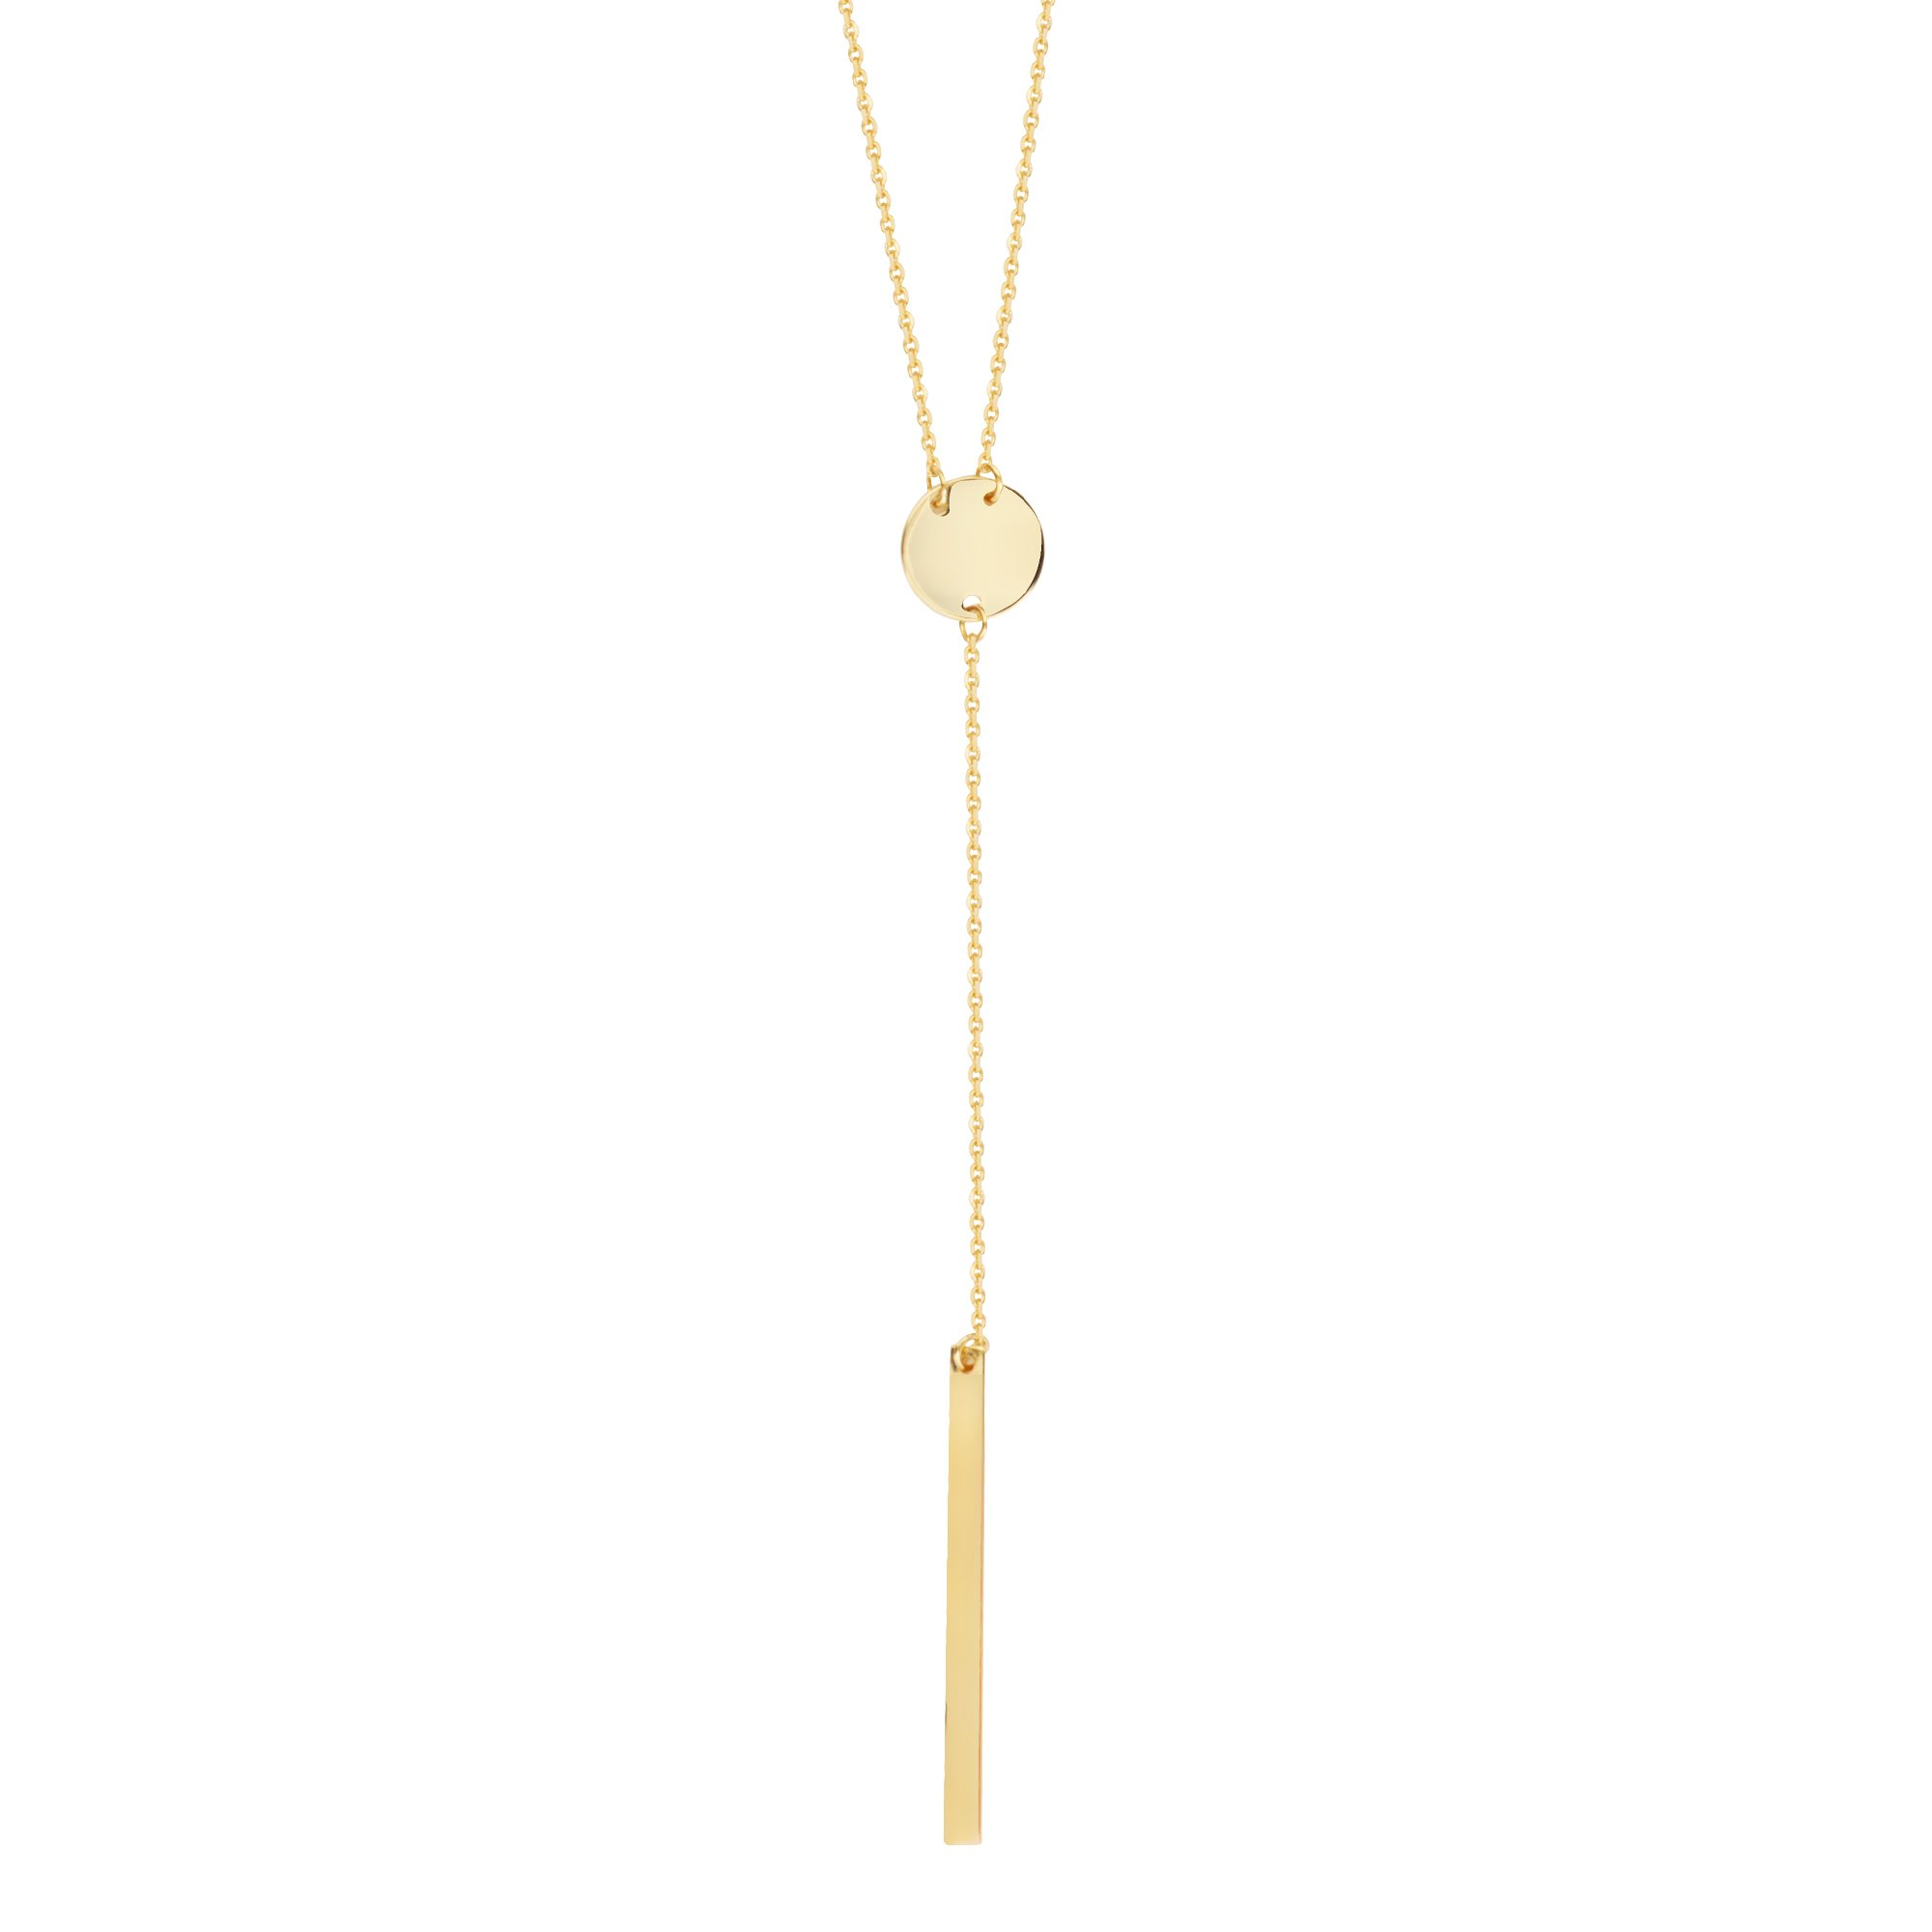 Round Disk and Bar Drop Necklace Lariat Style 14k Yellow Gold Adjustable Length by AzureBella Jewelry